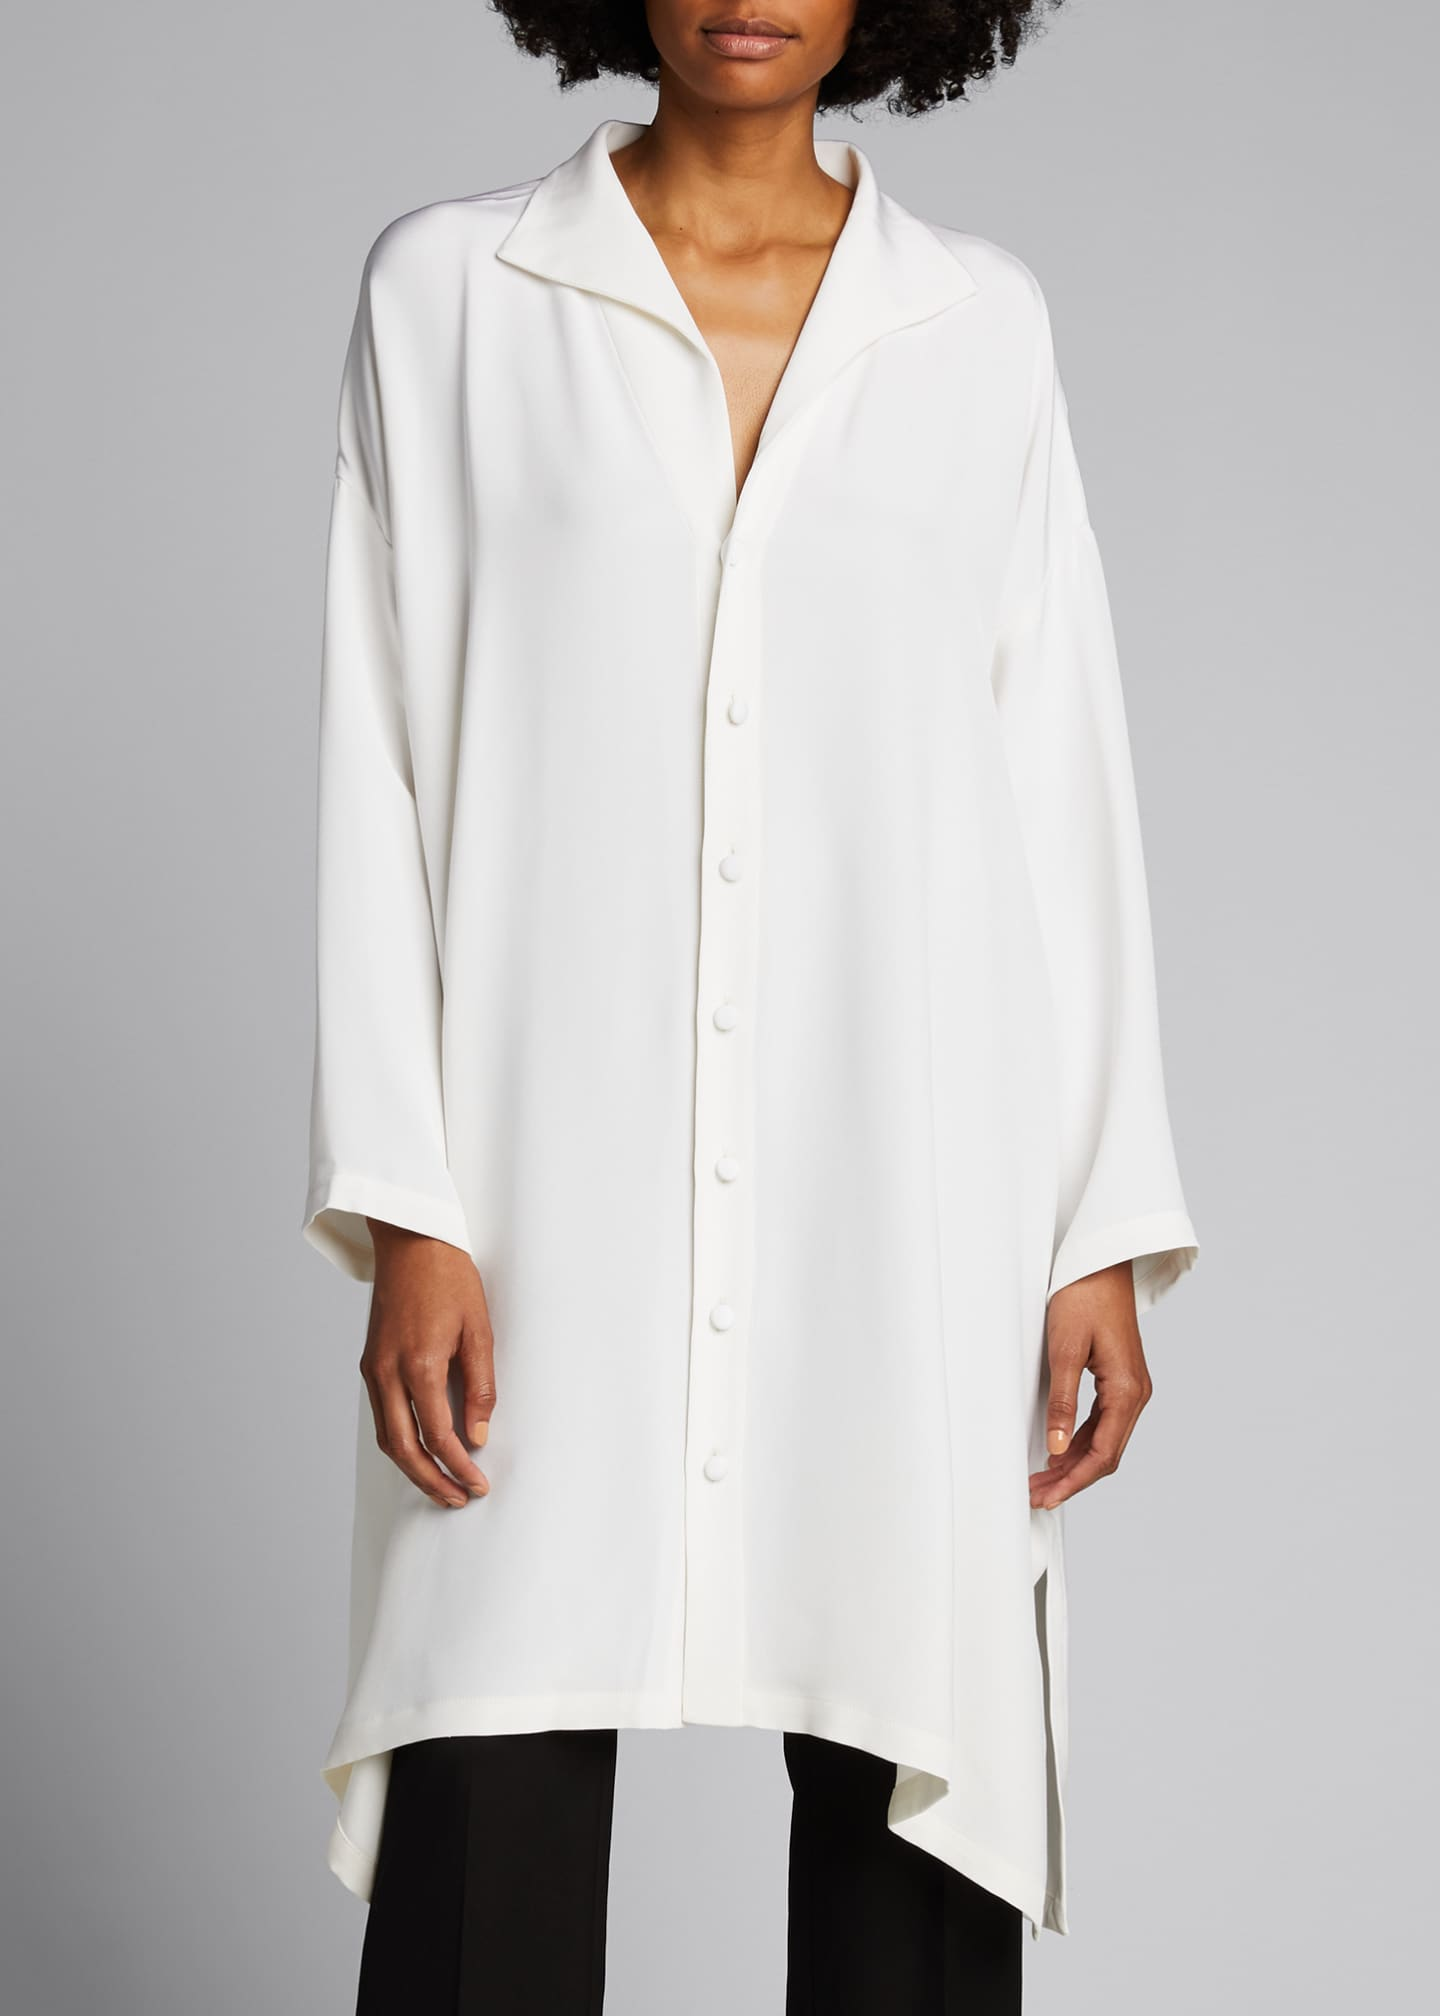 Image 3 of 5: Wide A-line Mid Weight Silk Long Shirt